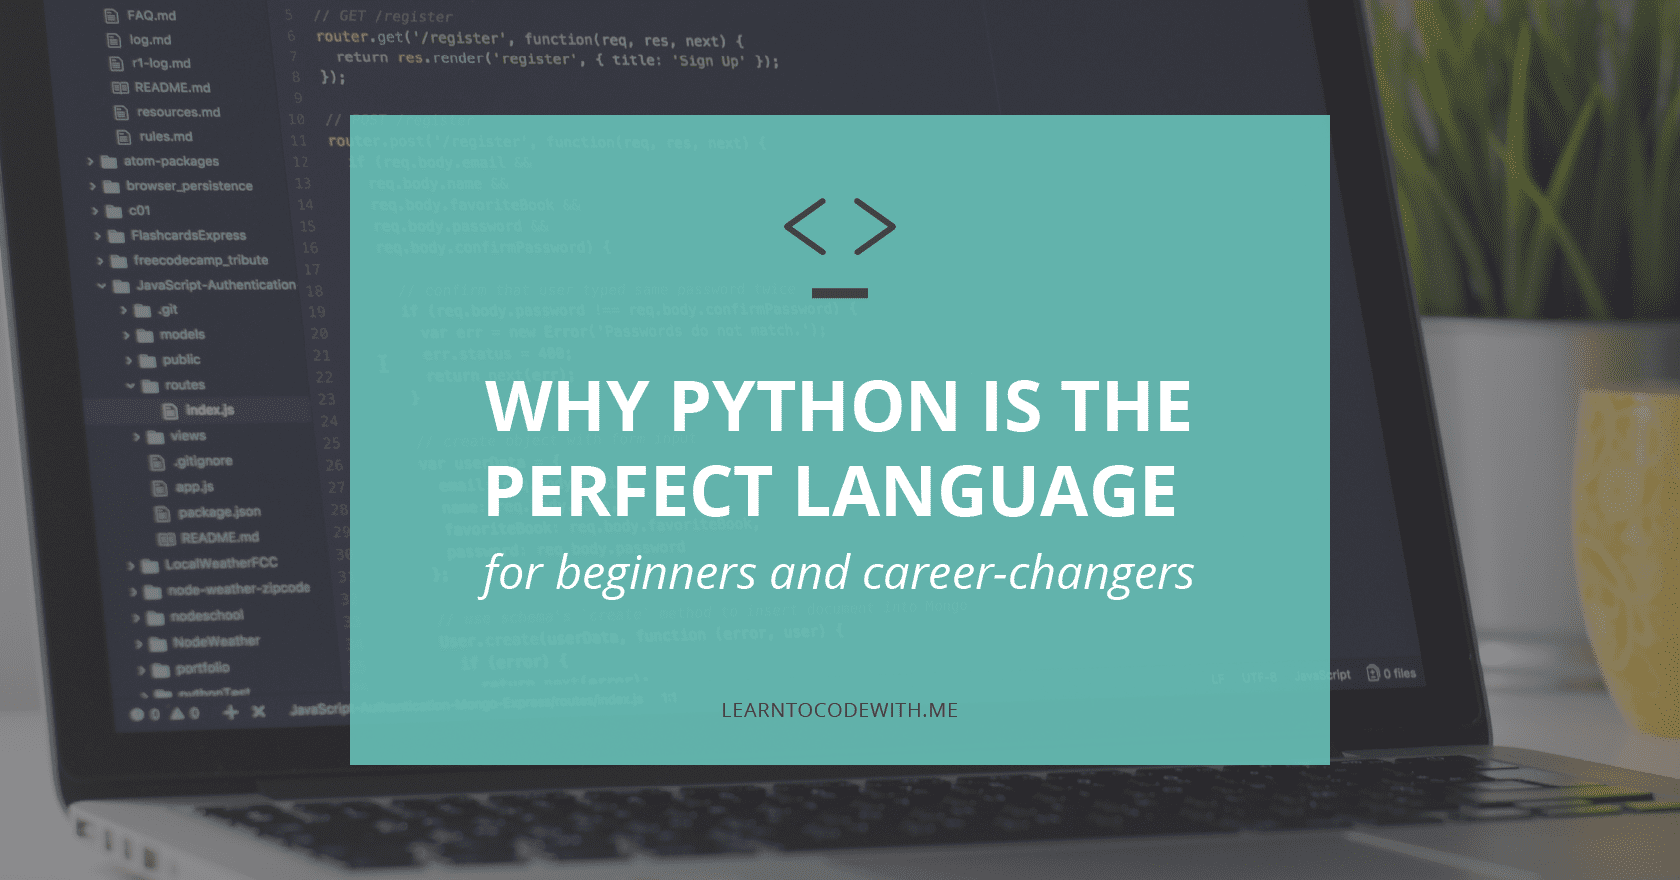 Why Learn Python? Why Python is the perfect language for beginners and career-changers